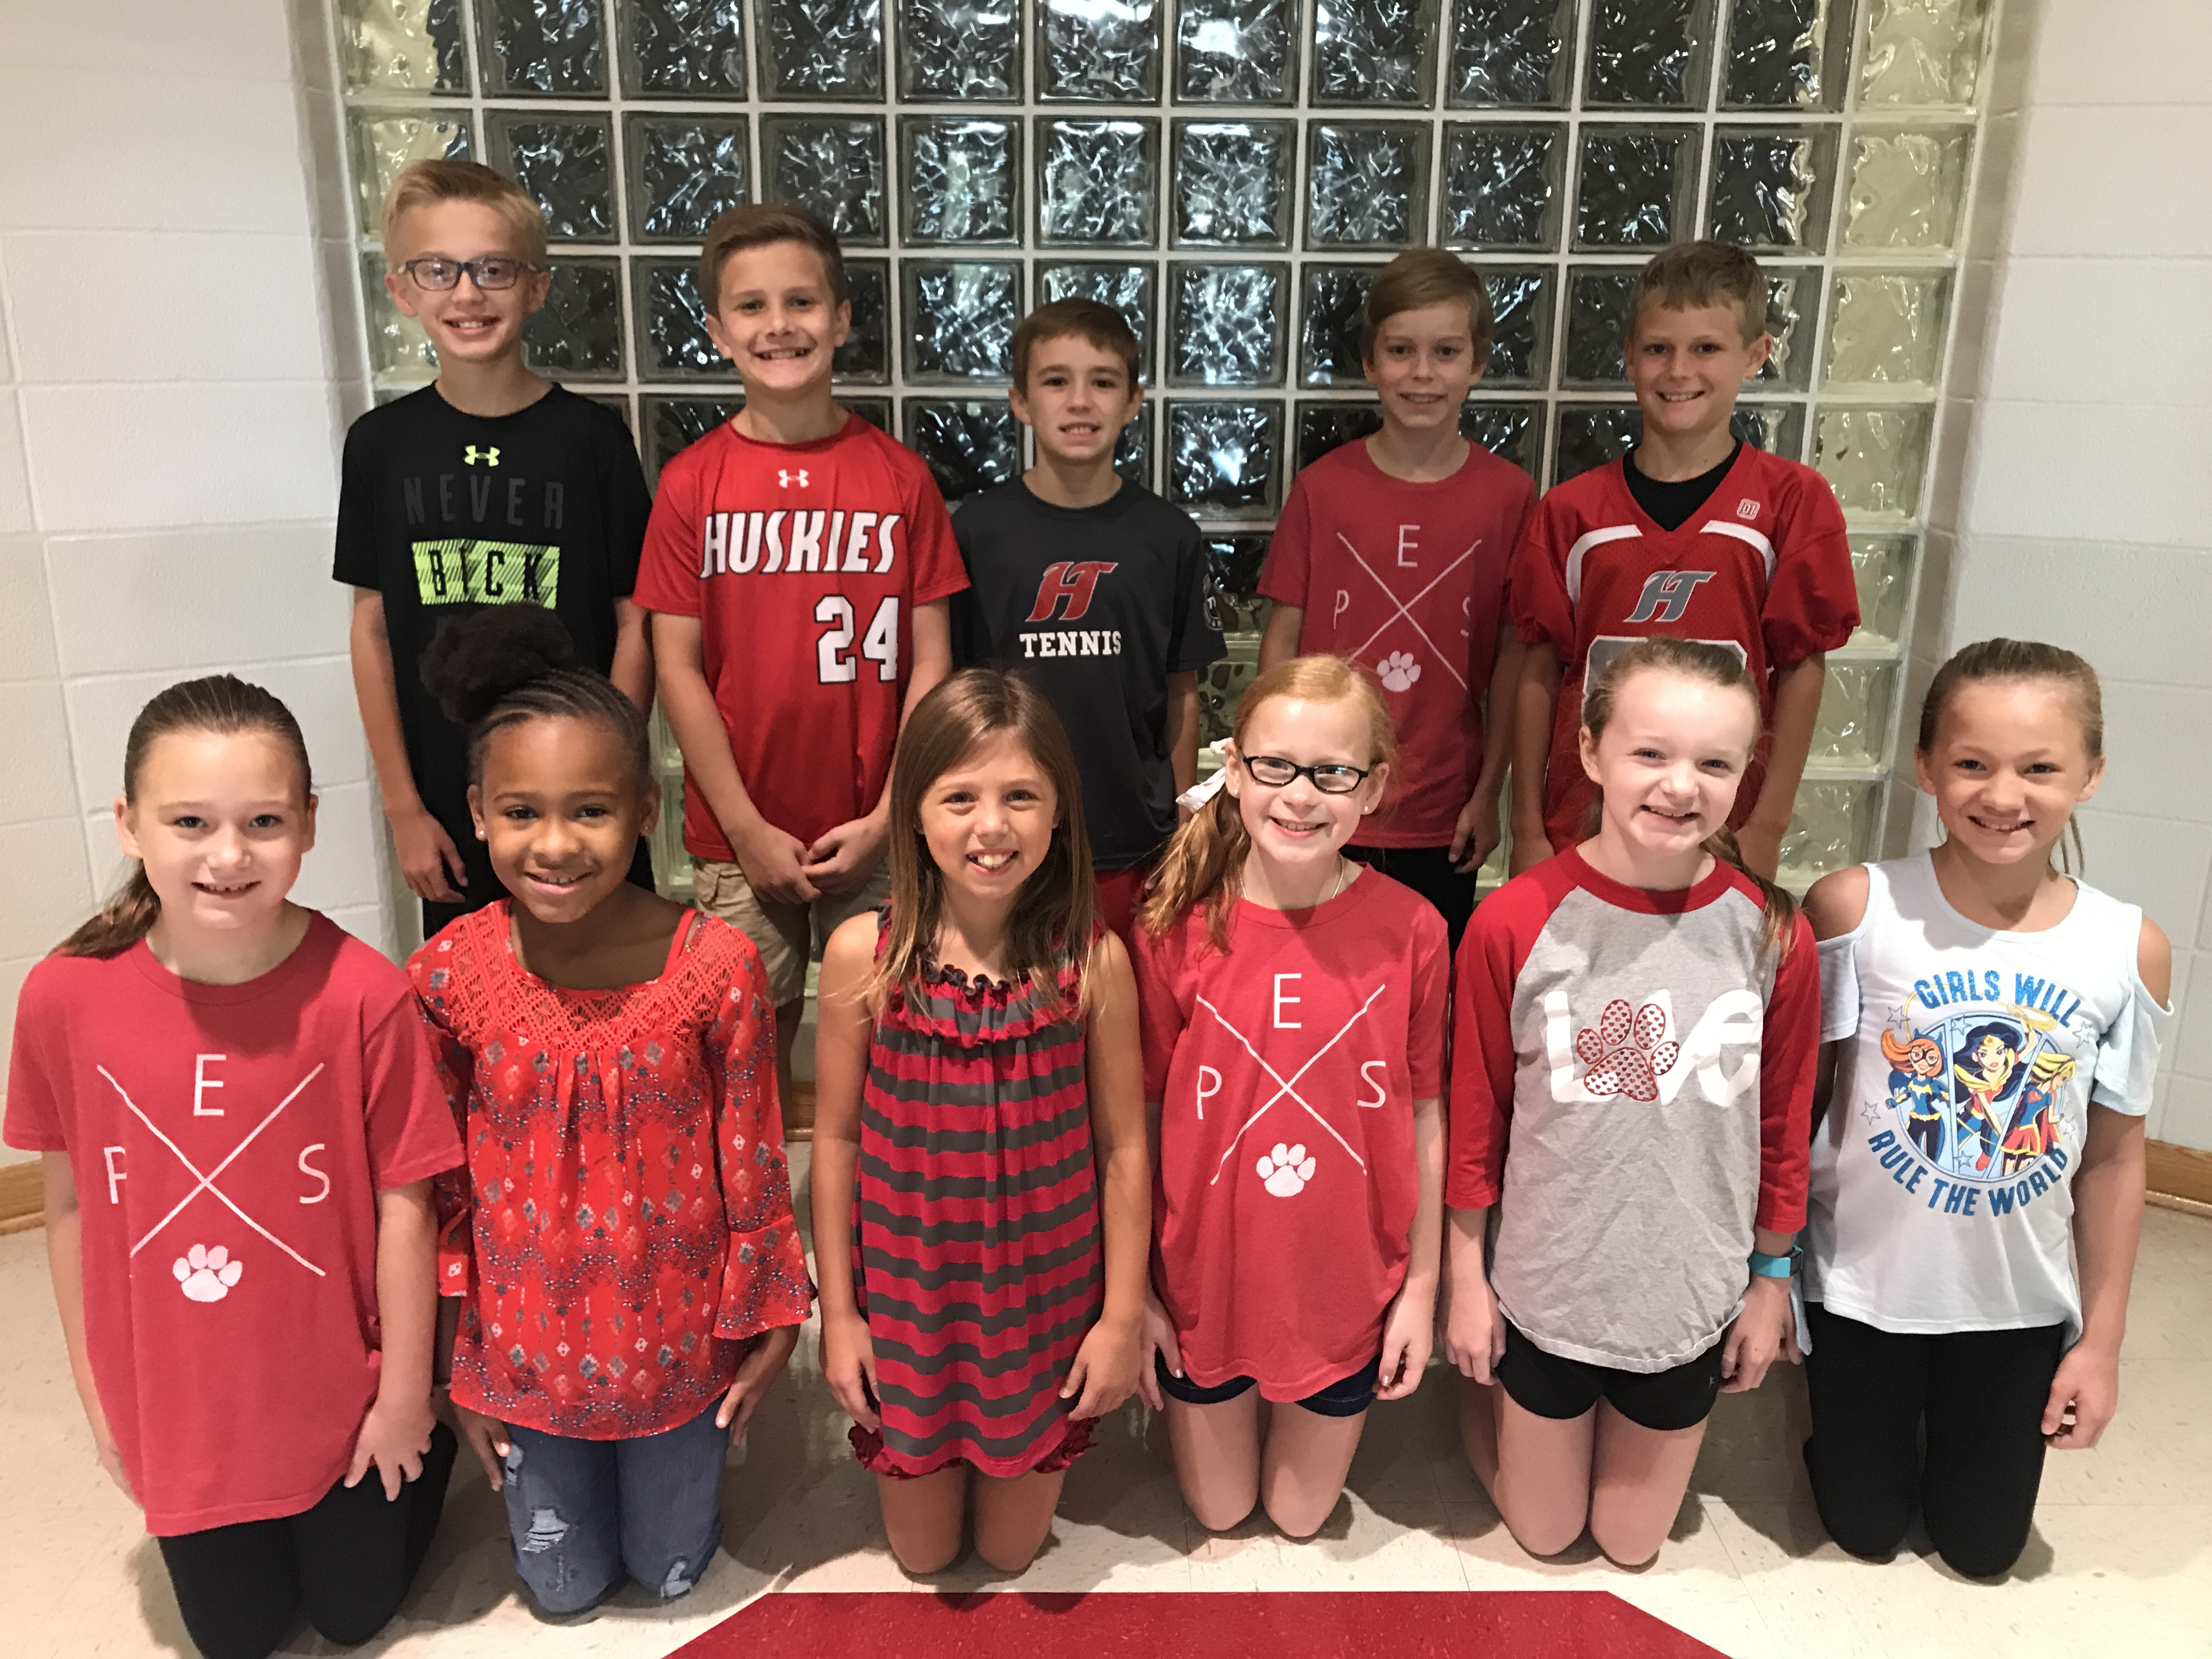 Paine Elementary School's FIRST Student Leadership team named